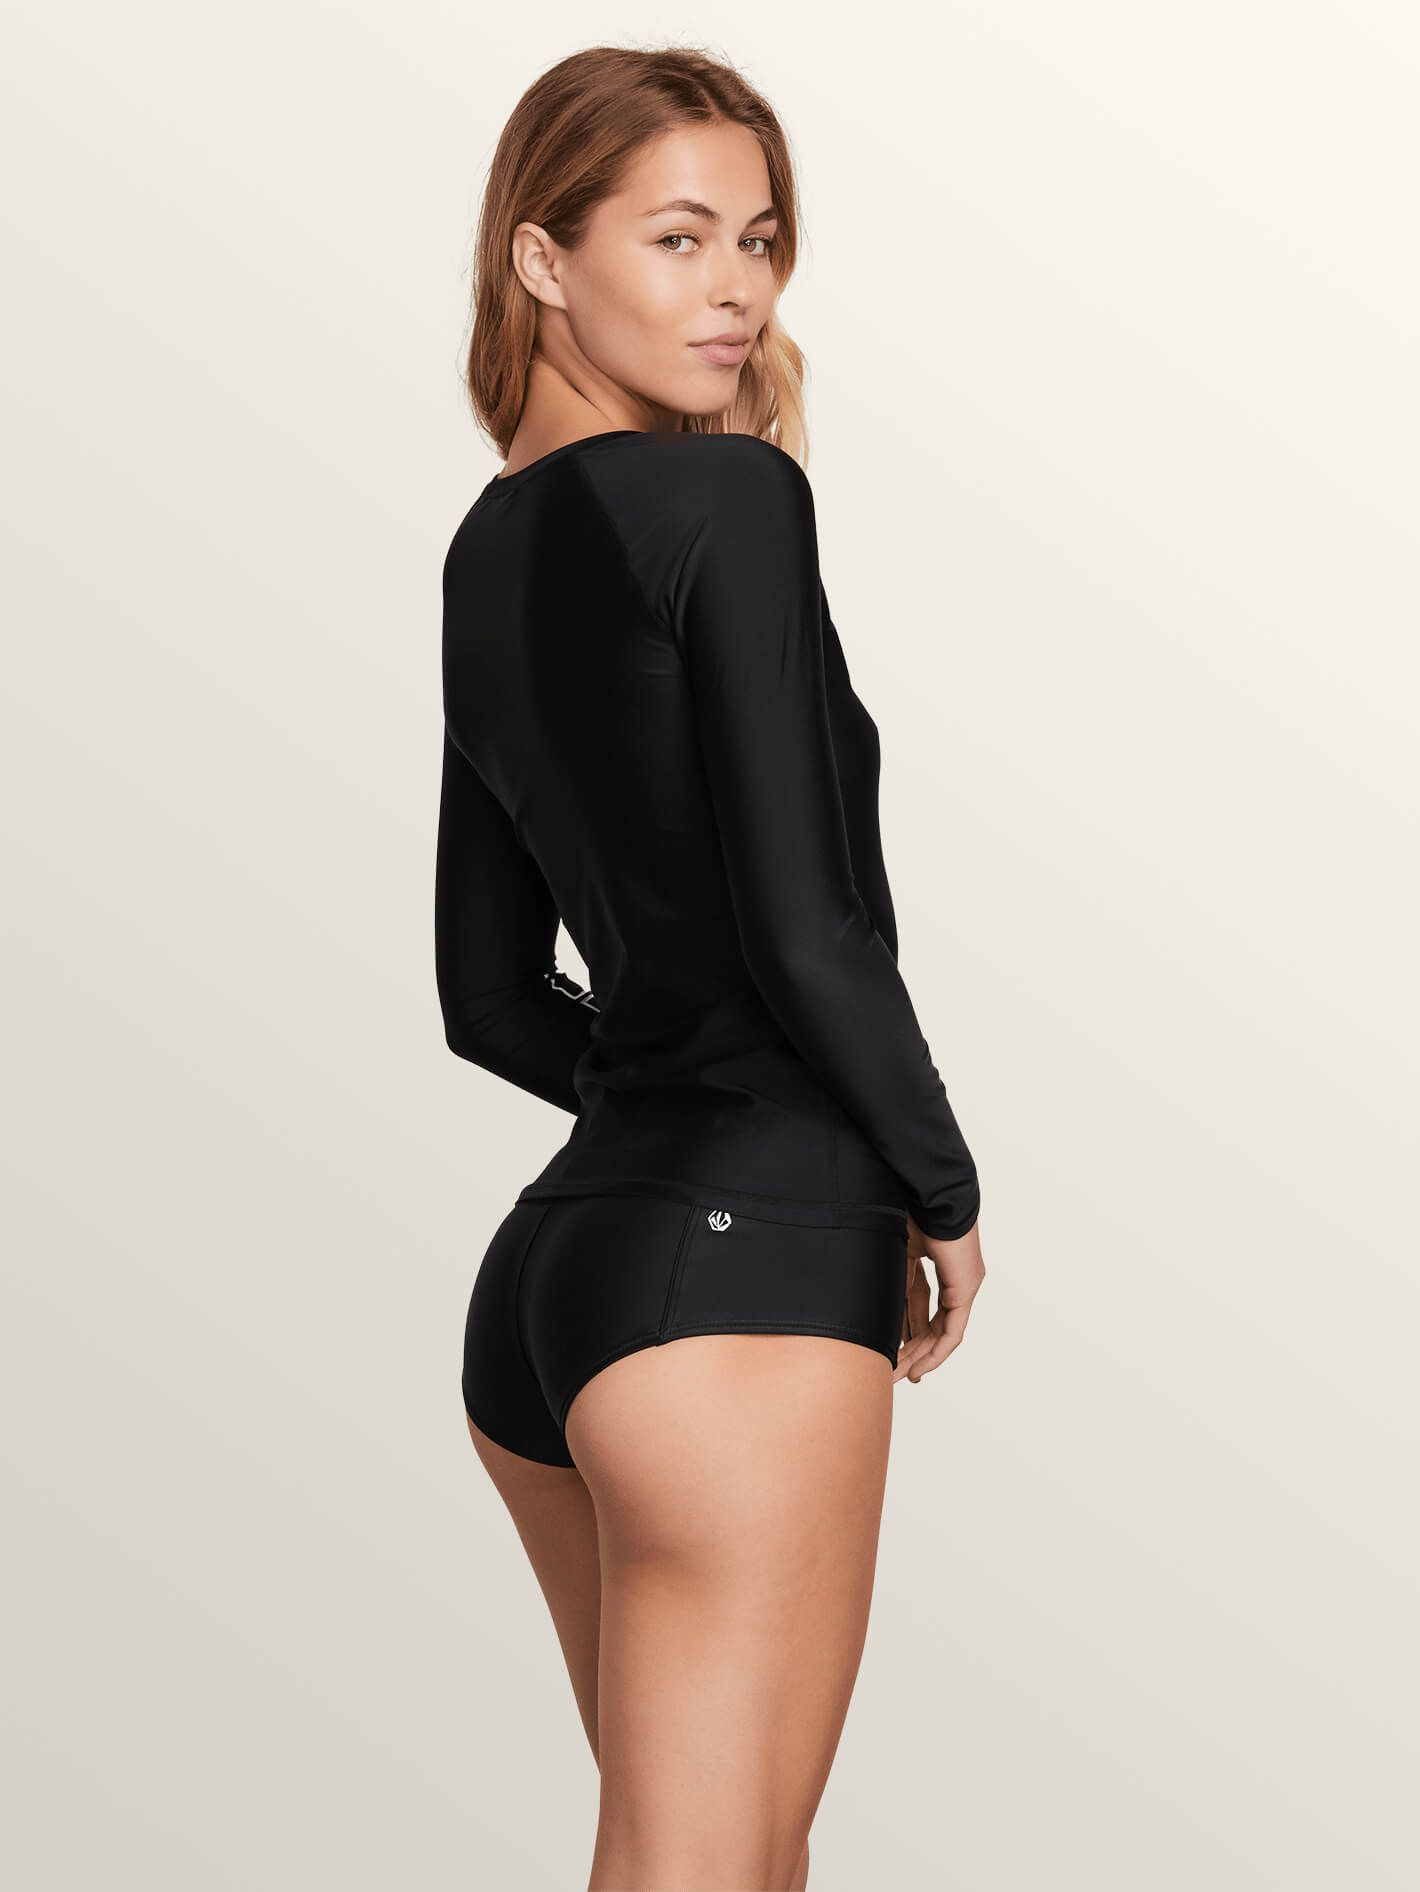 VOLCOM WMNS SIMPLY SOLID LS